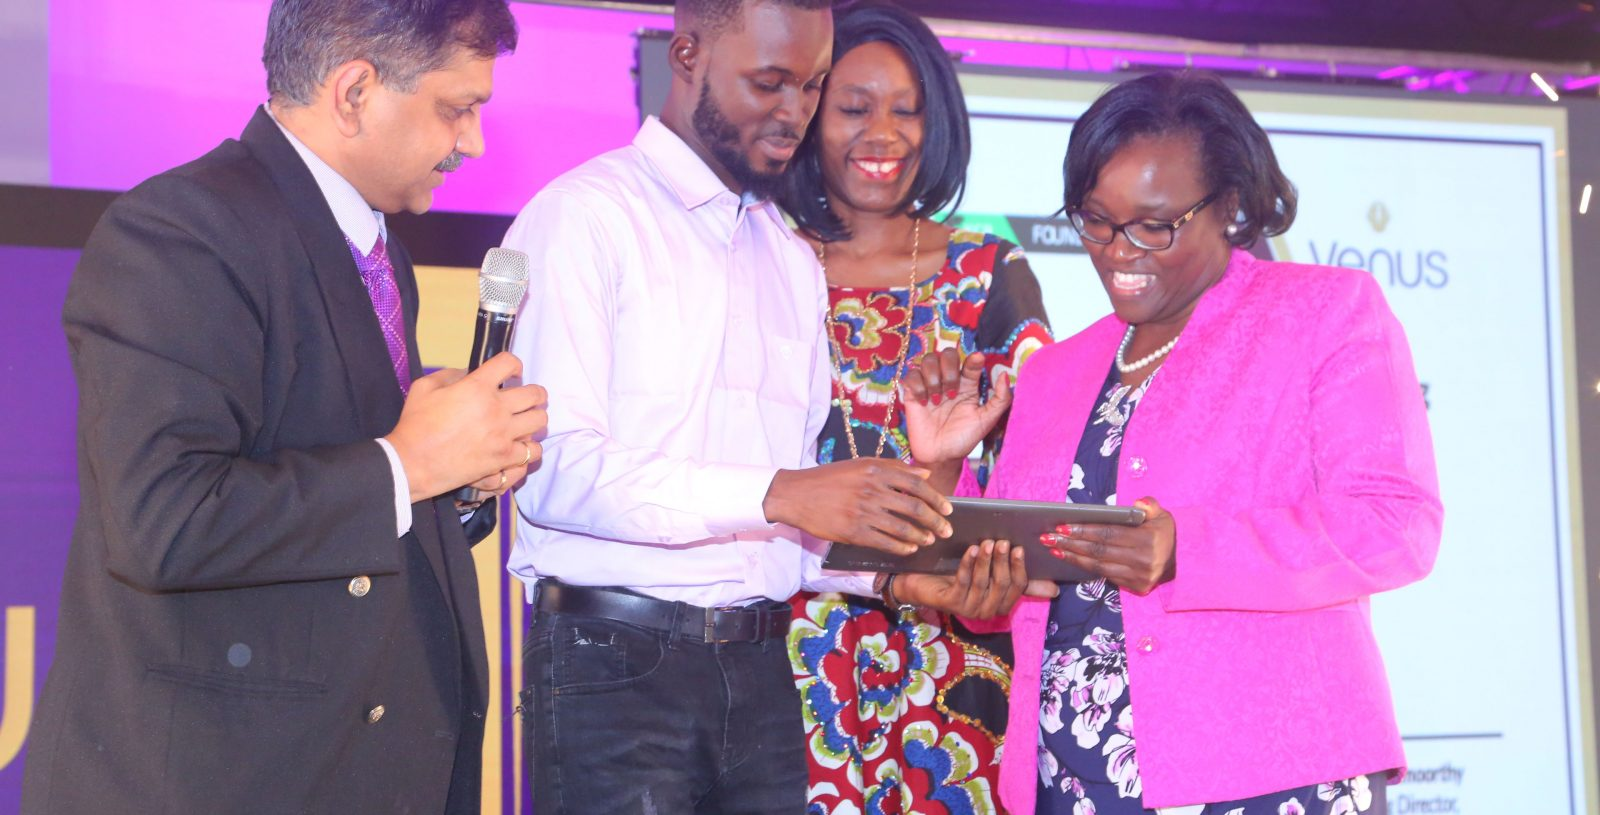 KCB Foundation Partners With PZ Cussons, Venus to Deliver 1,000 New Jobs in the Beauty Sector